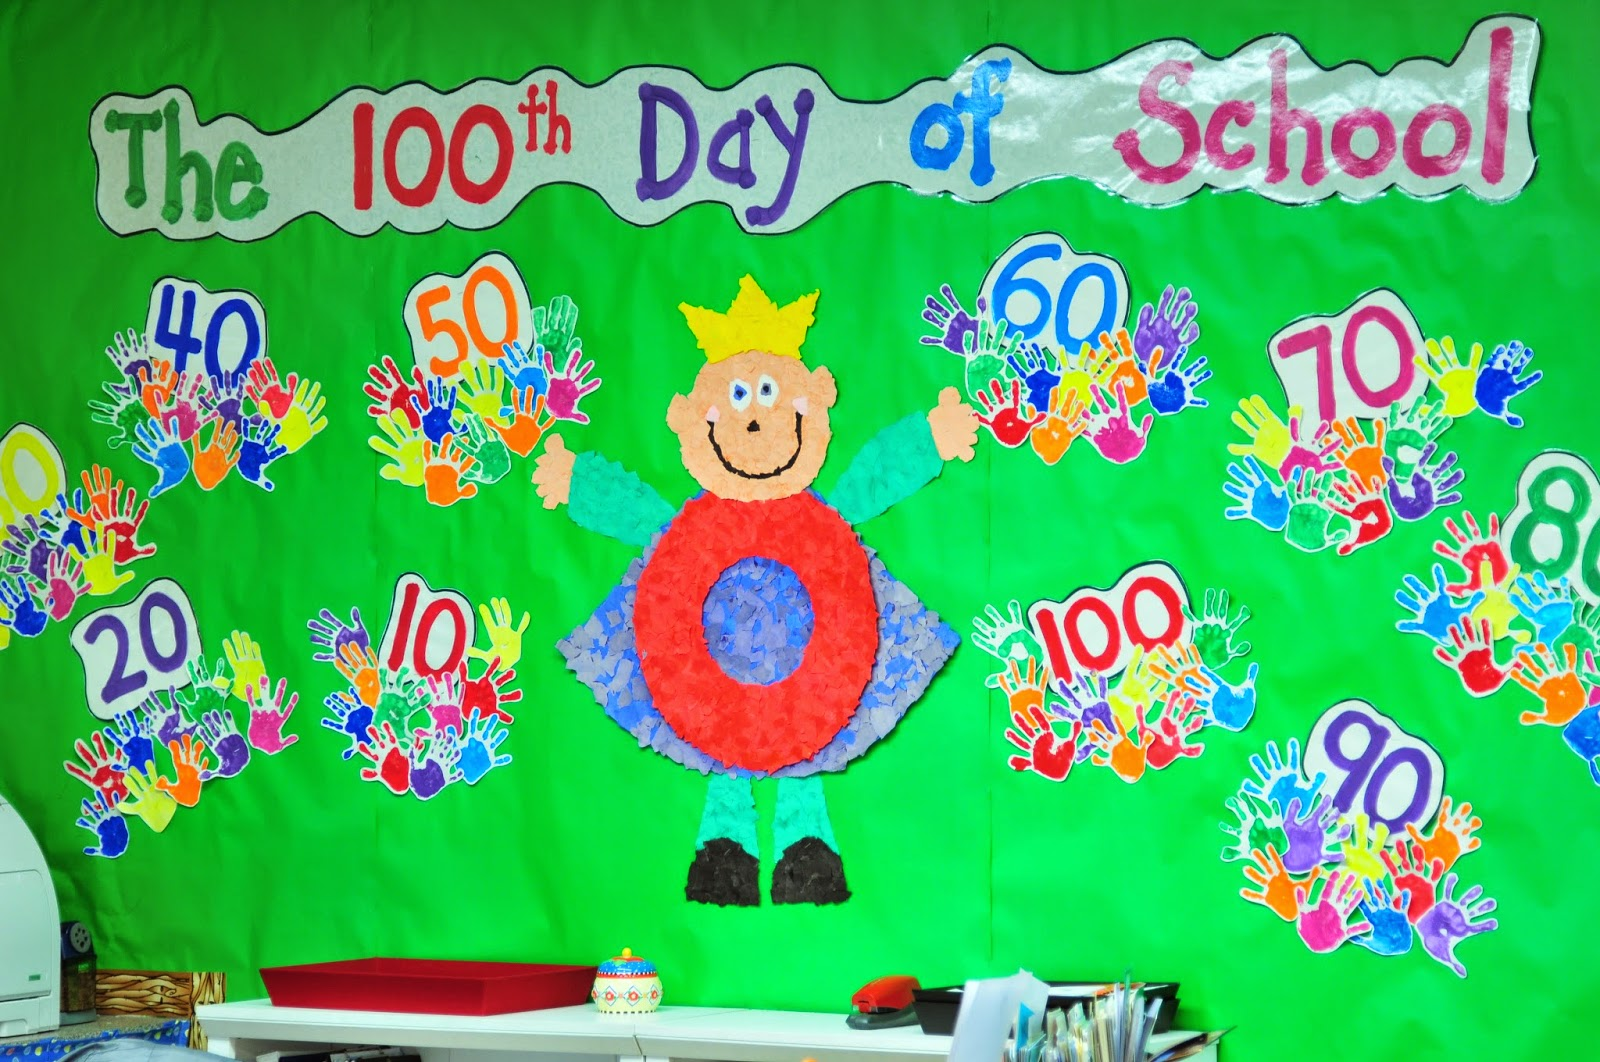 Kindergarten With Susie The 100th Day Of School Celebration